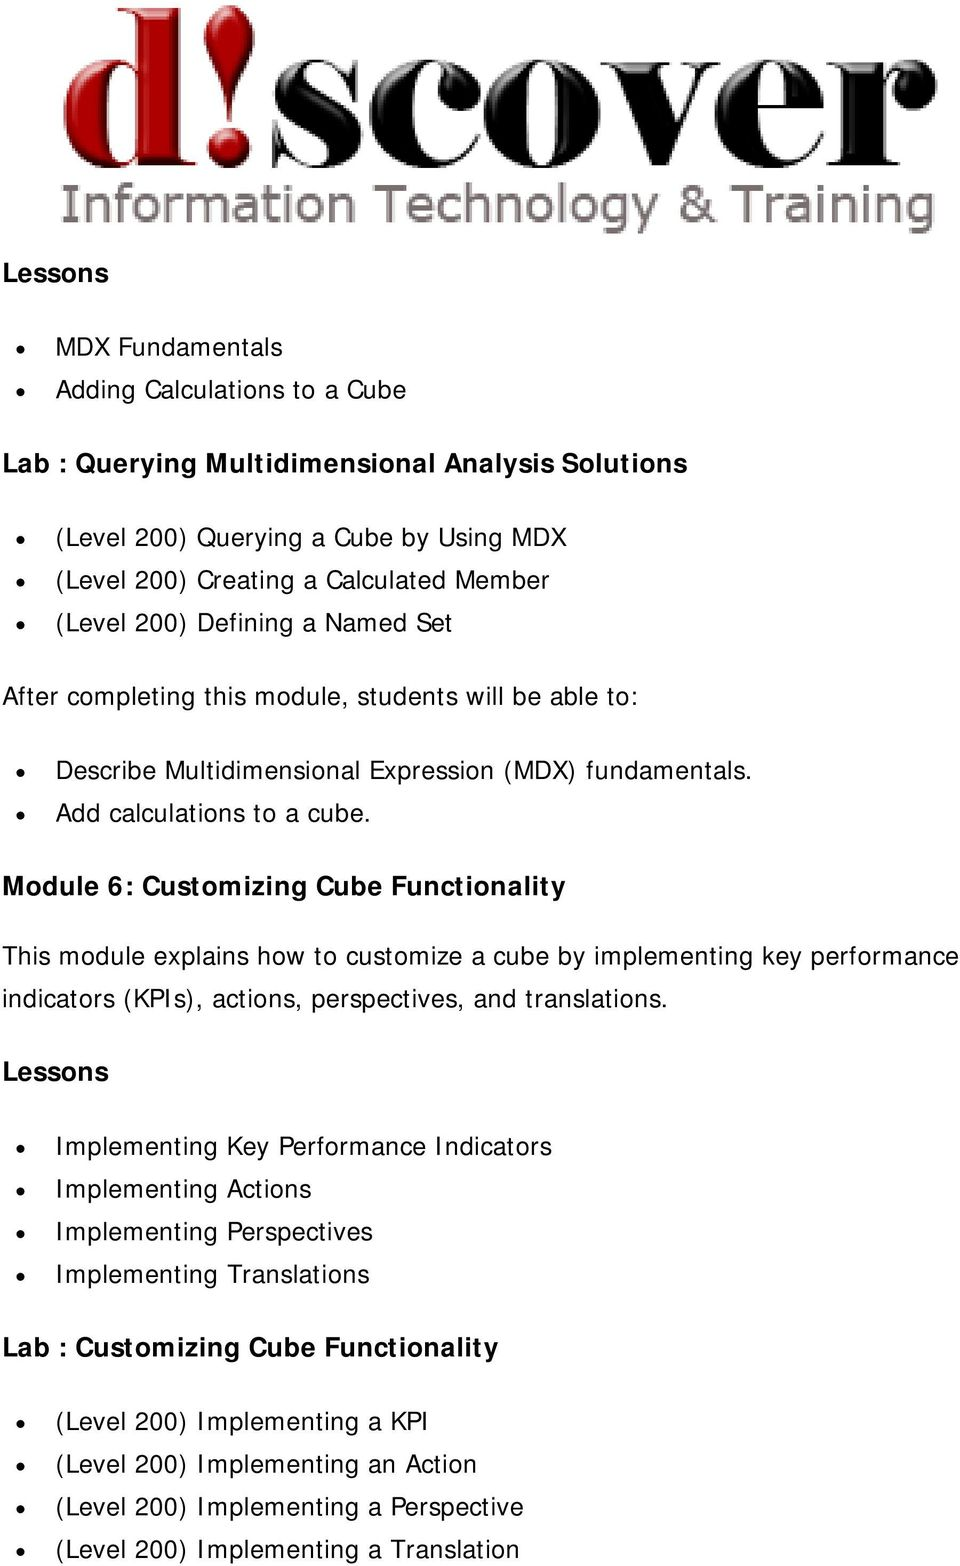 Module 6: Customizing Cube Functionality This module explains how to customize a cube by implementing key performance indicators (KPIs), actions, perspectives, and translations.